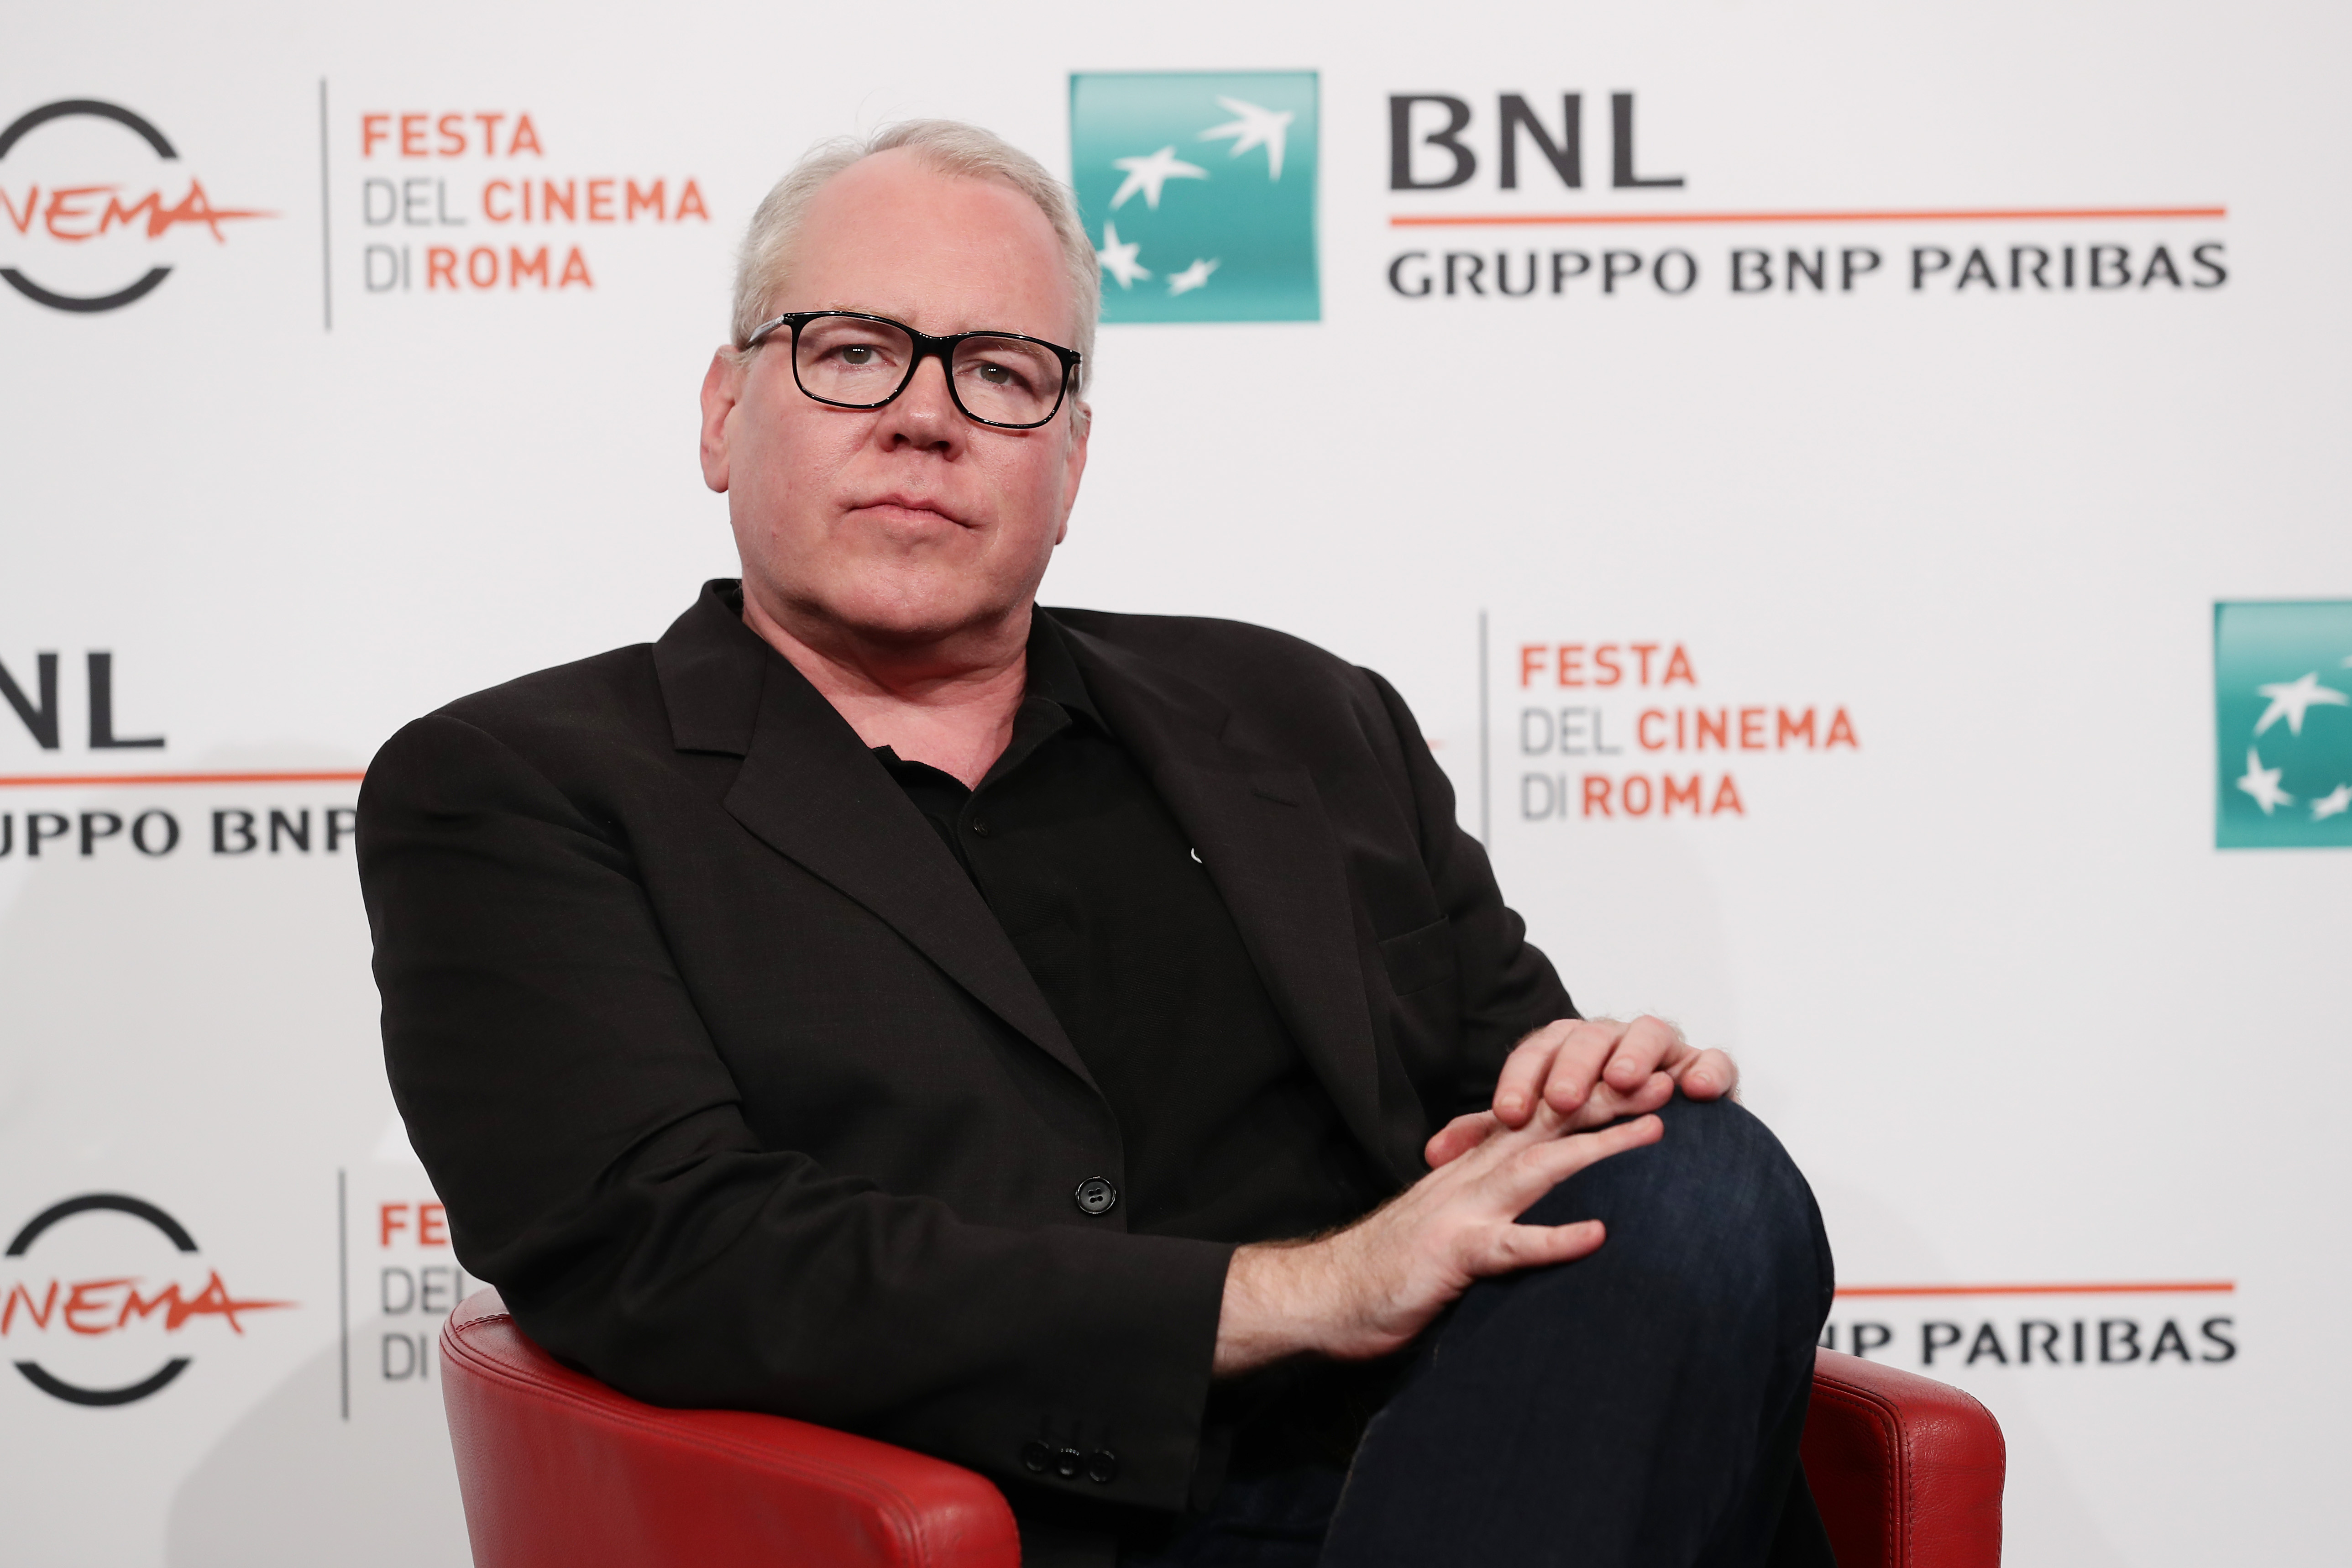 Bret Easton Ellis during the 14th Rome Film Festival on October 20, 2019 in Rome, Italy. (Photo by Vittorio Zunino Celotto/Getty Images for RFF)